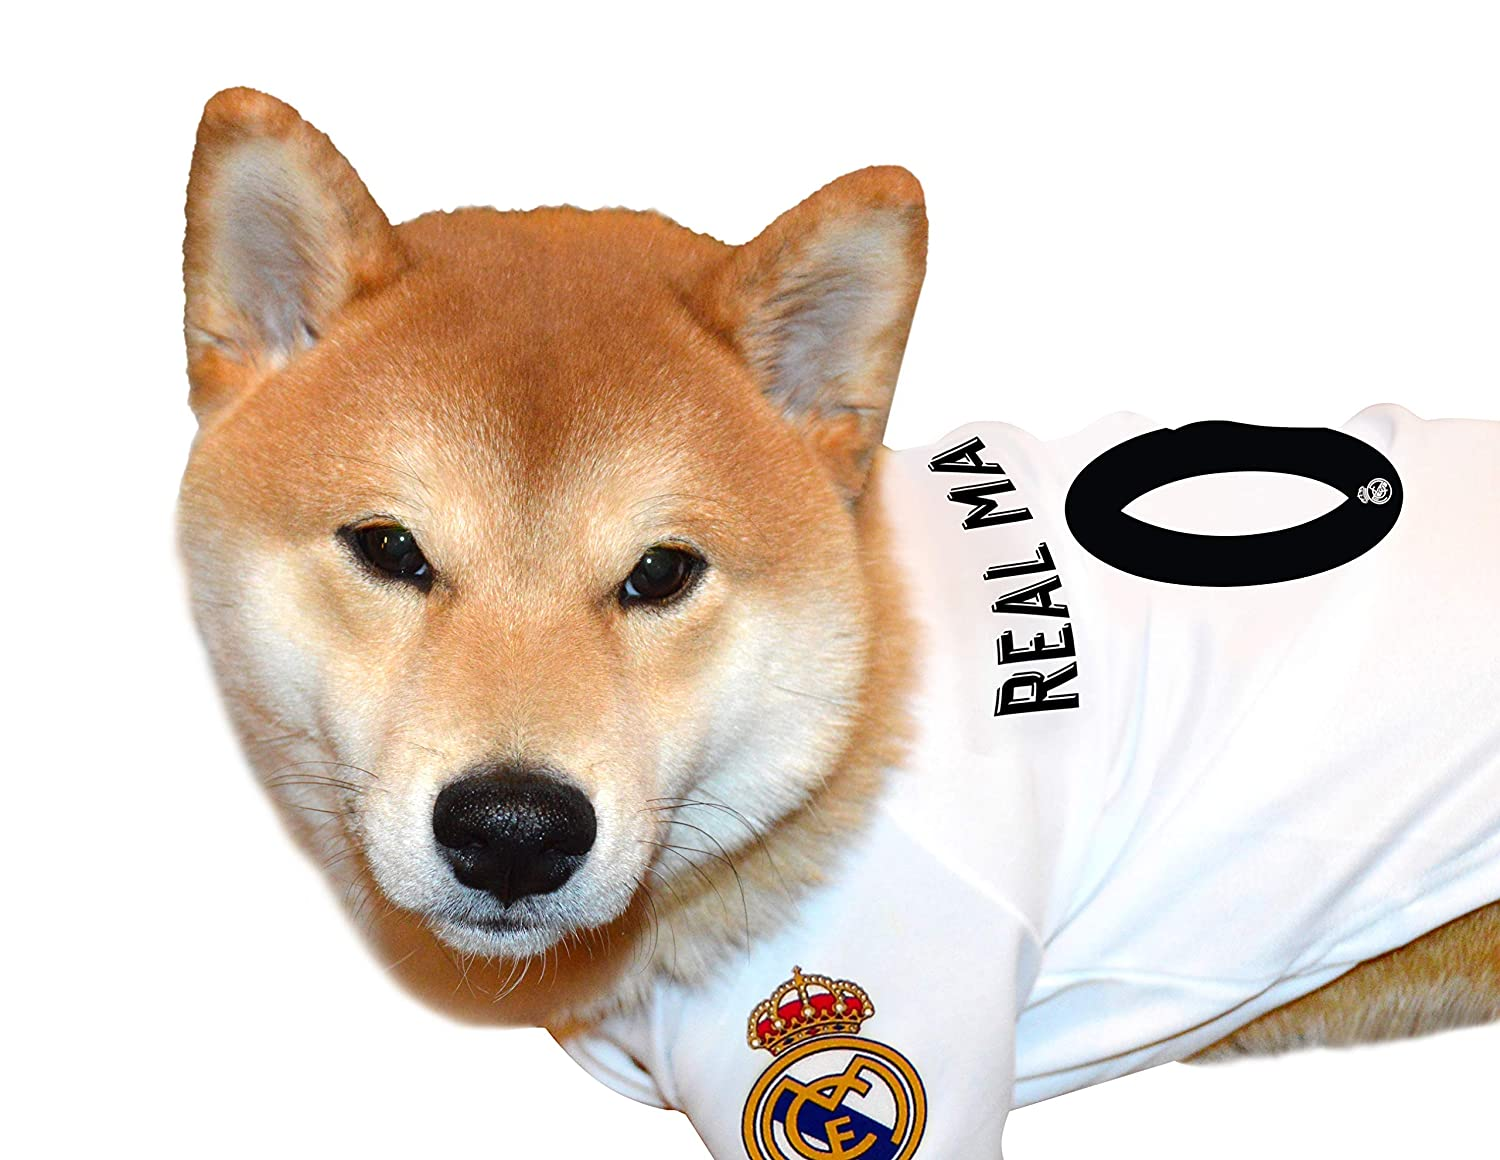 competitive price e39d3 2fd8b Real Madrid Soccer Pet Jerseys Shirts Collars Bandanas & Football Toys for  Dogs & Cats. - MLS Sports Licensed Dog Apparels, Cute Pet Accessories & Fun  ...